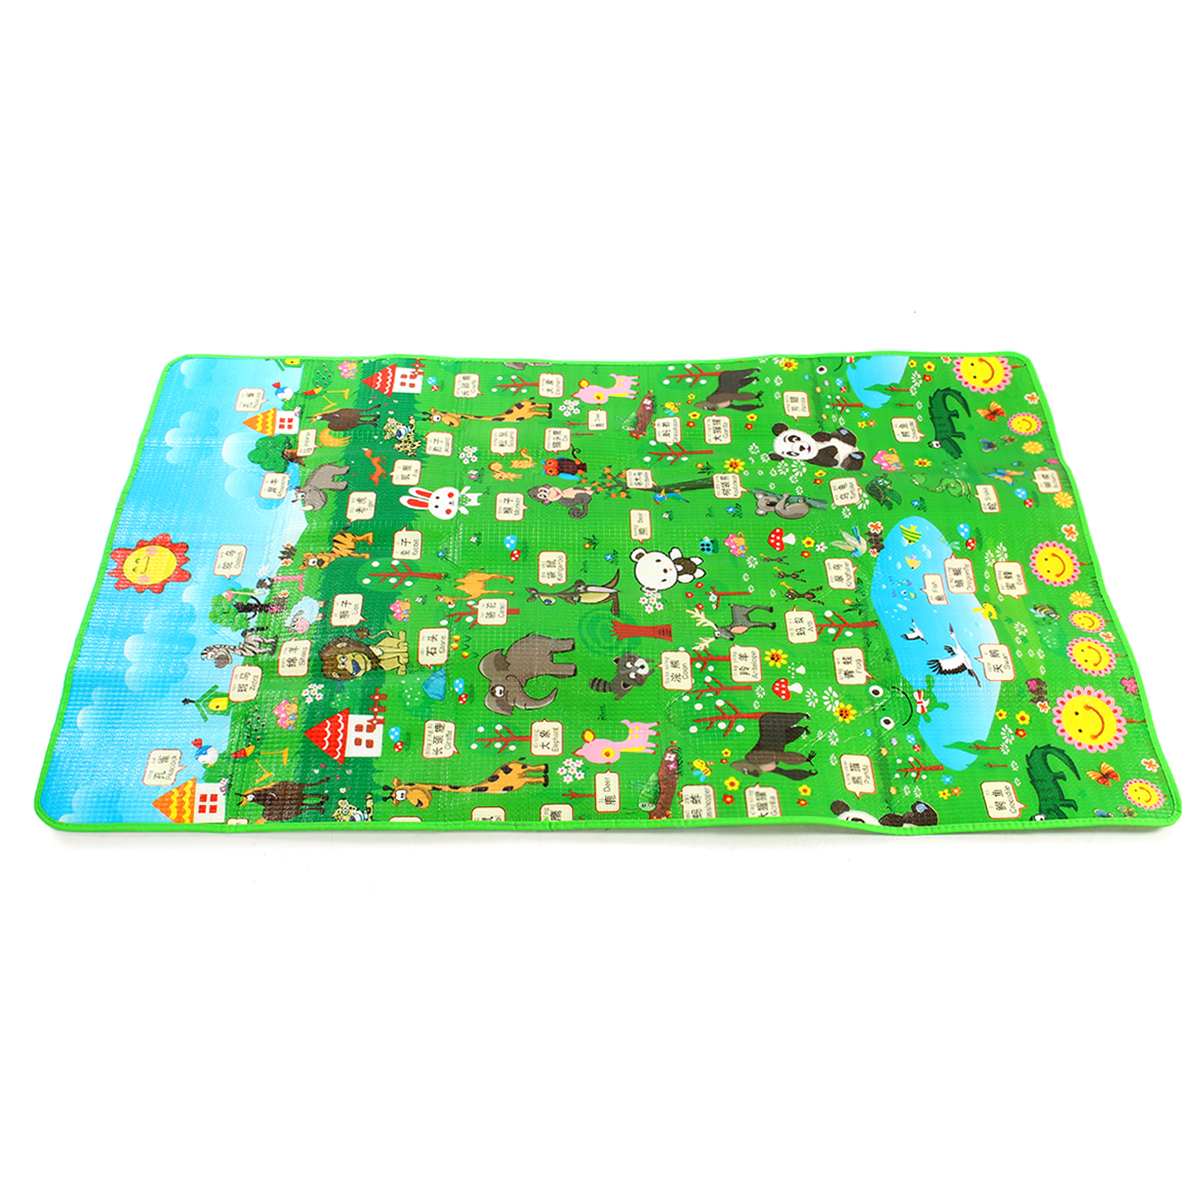 mat toddler soft mats baby kid type safety itm carpet sided double playmat crawl play game